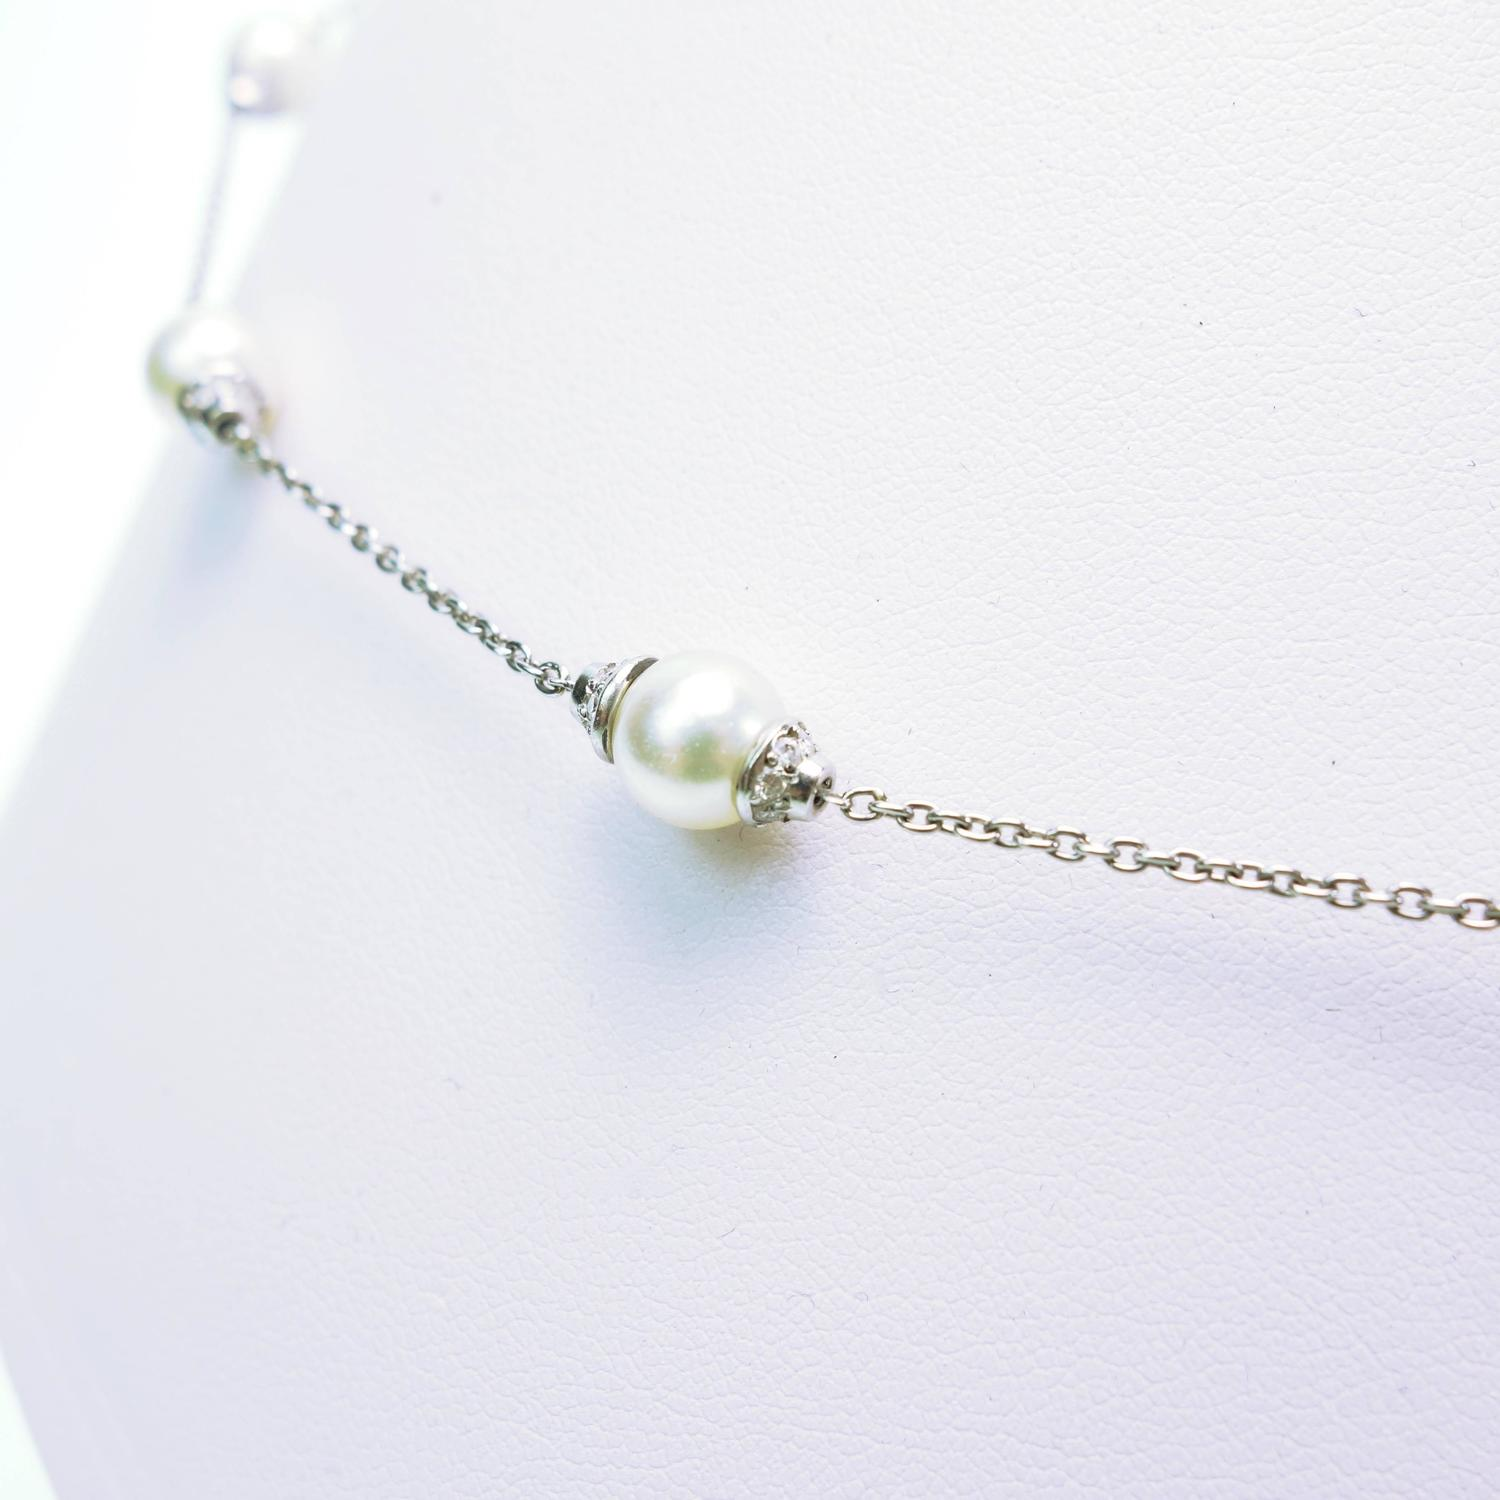 Michael b pearl diamond platinum necklace for sale at 1stdibs for Michael b s jewelry